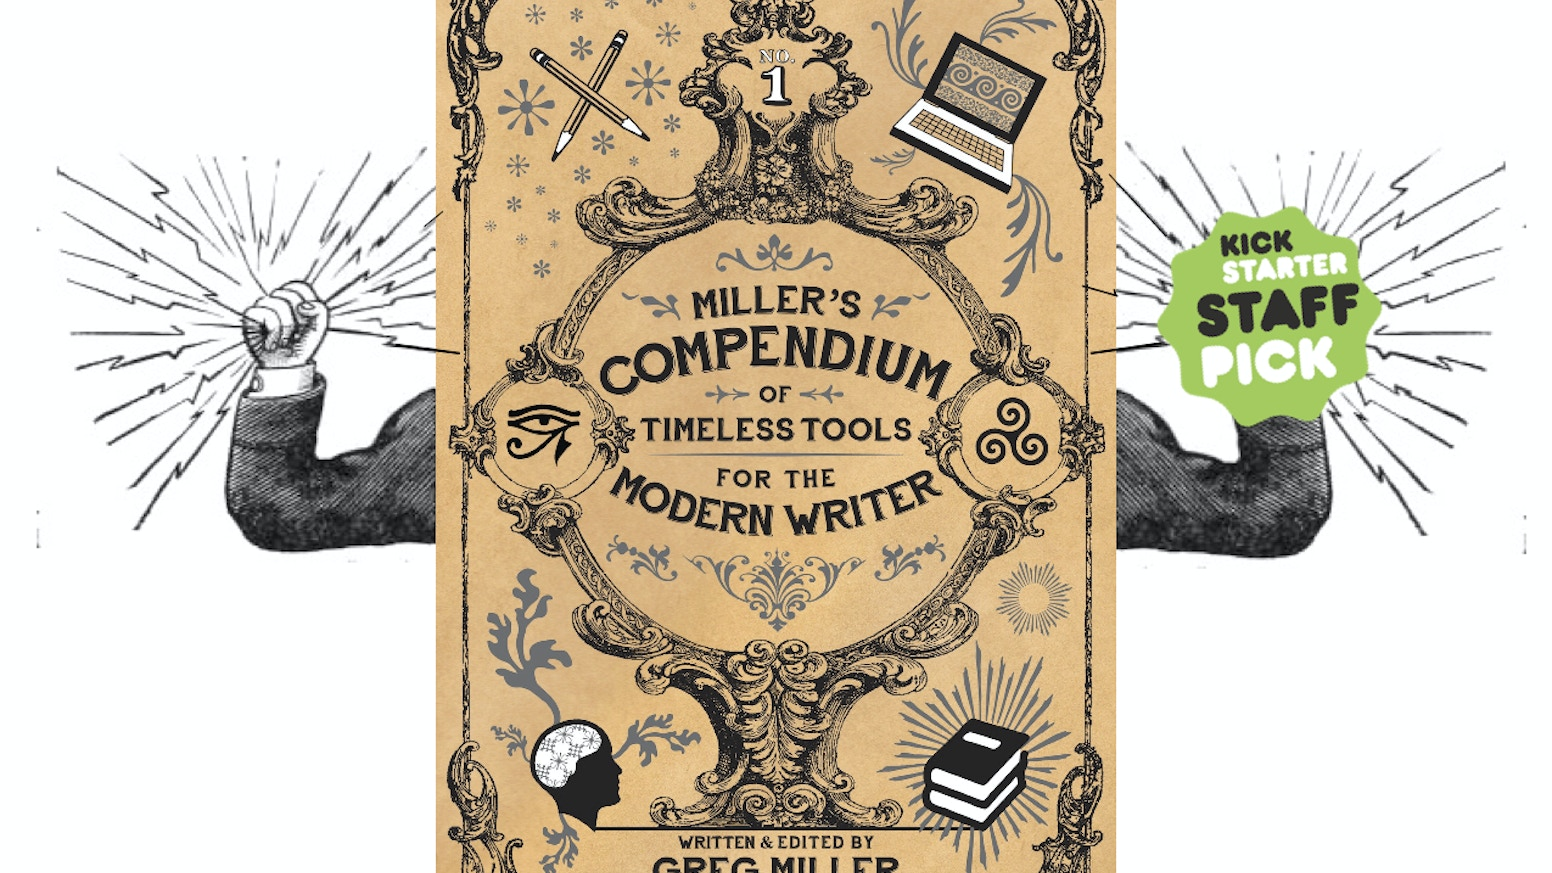 """Miller's Compendium of Timeless Tools for the Modern Writer"" is an encyclopedic catalog of writing resources in clickable e-book form."